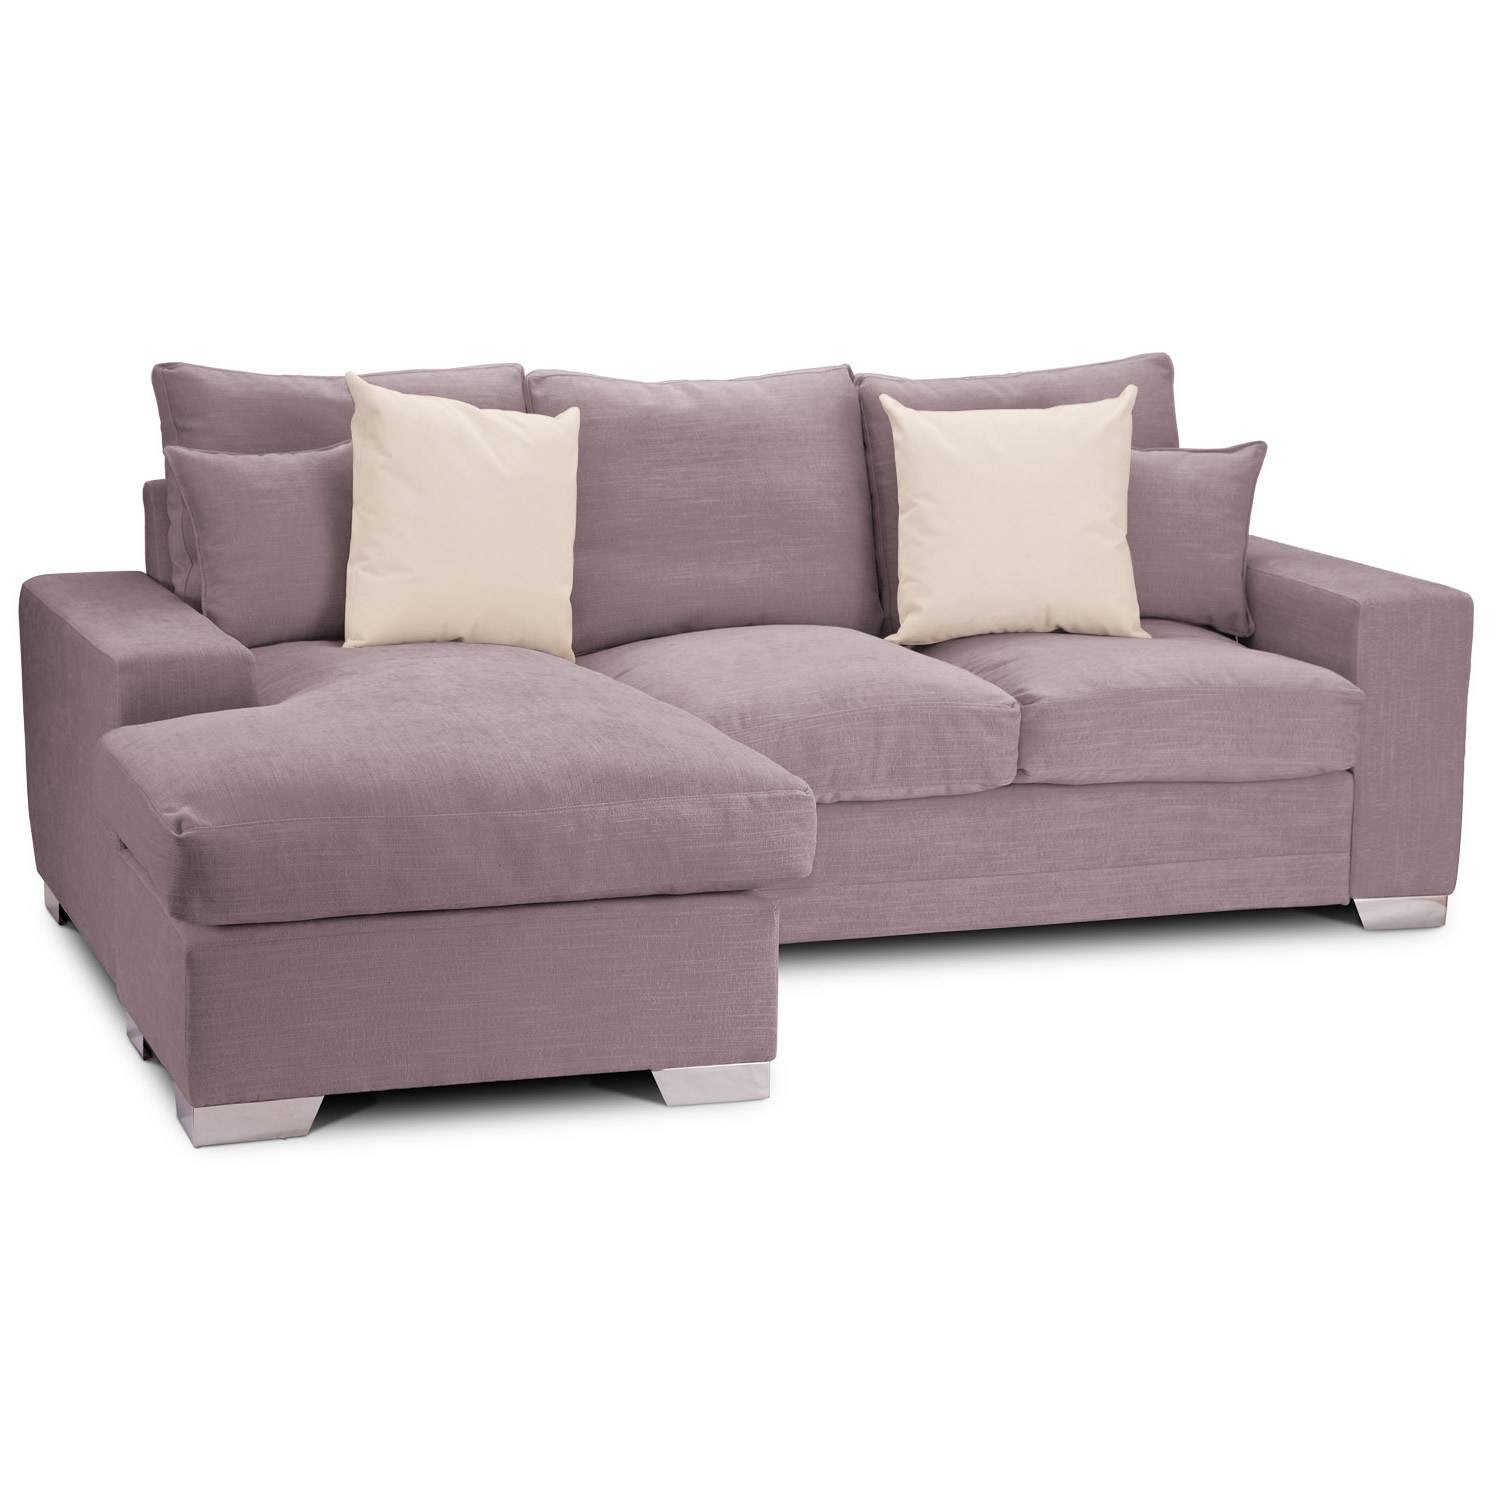 Light Gray Sectional Couch With Wide Chaise And Short Metal Legs with regard to Short Sectional Sofas (Image 8 of 15)